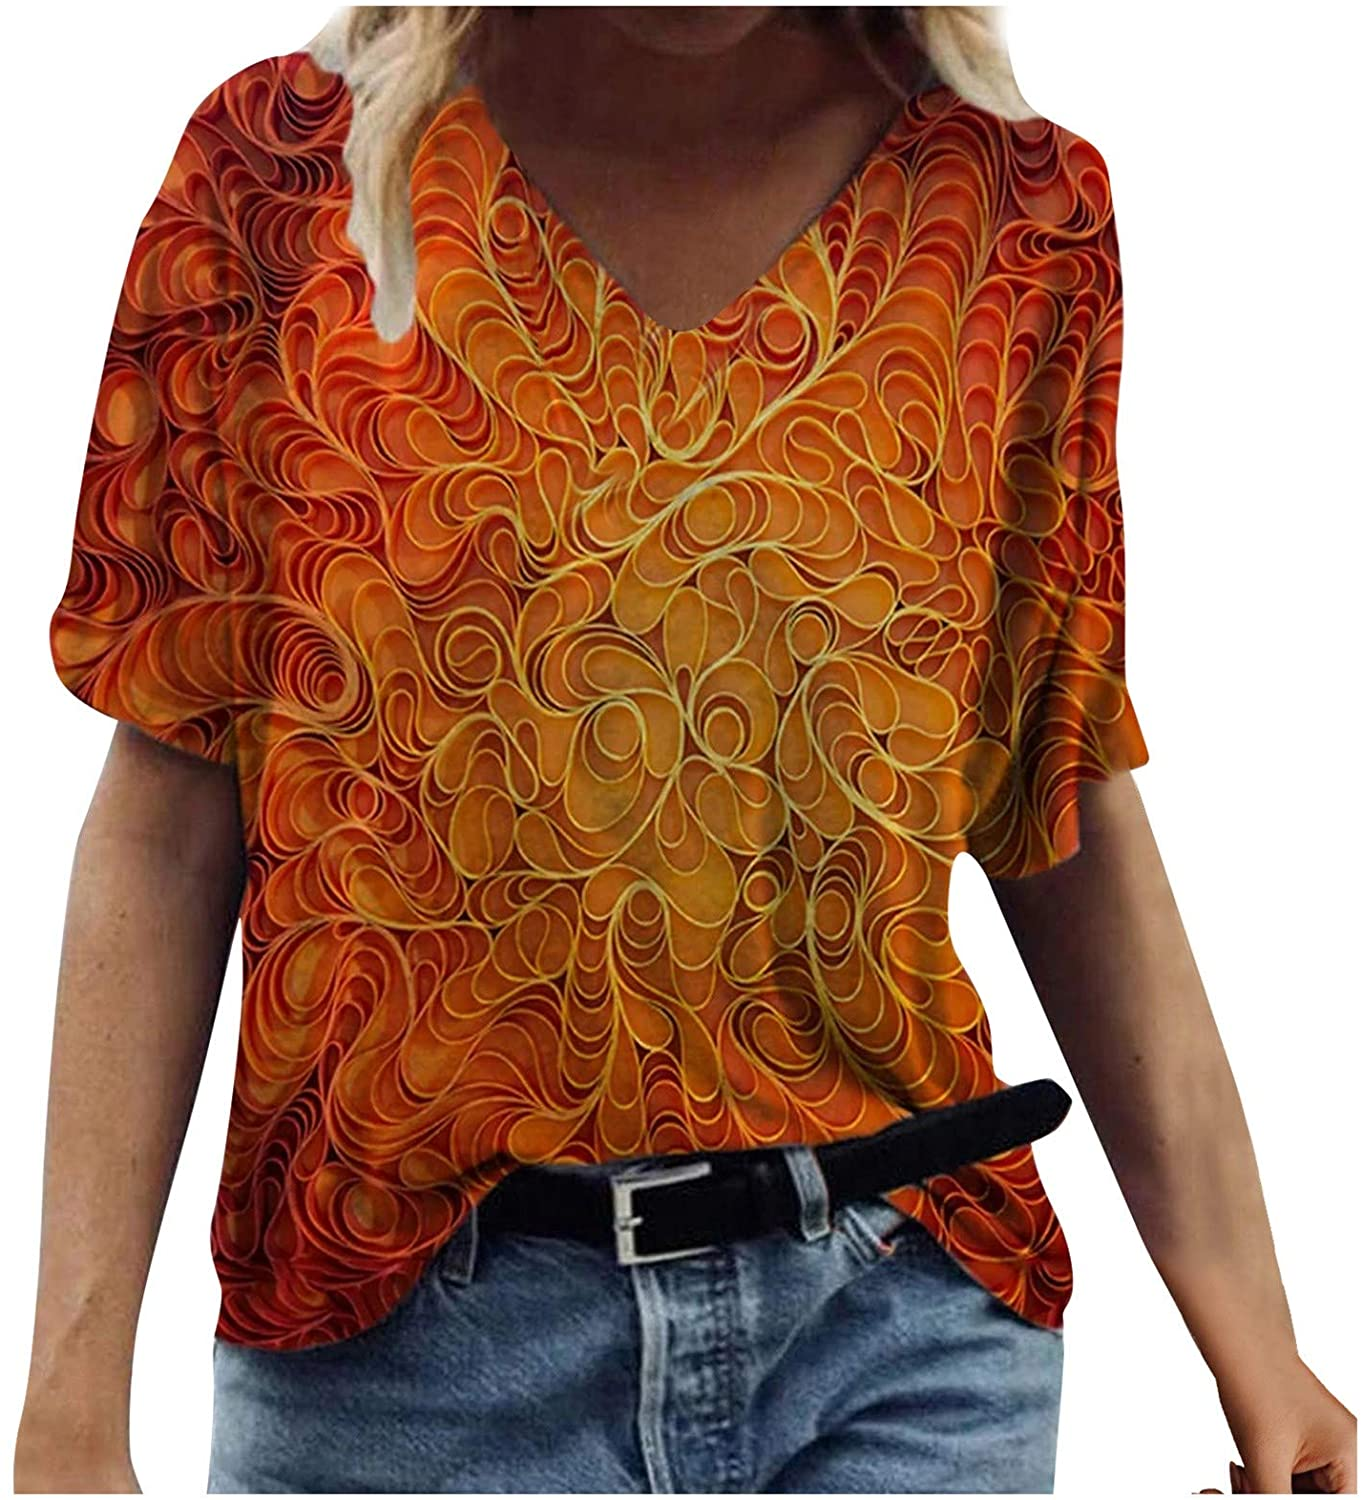 POLLYANNA KEONG Plus Size Tops for Women 3/4 Length Sleeves,Womens Tops V Neck Summer Floral Printed Casual Tshirts